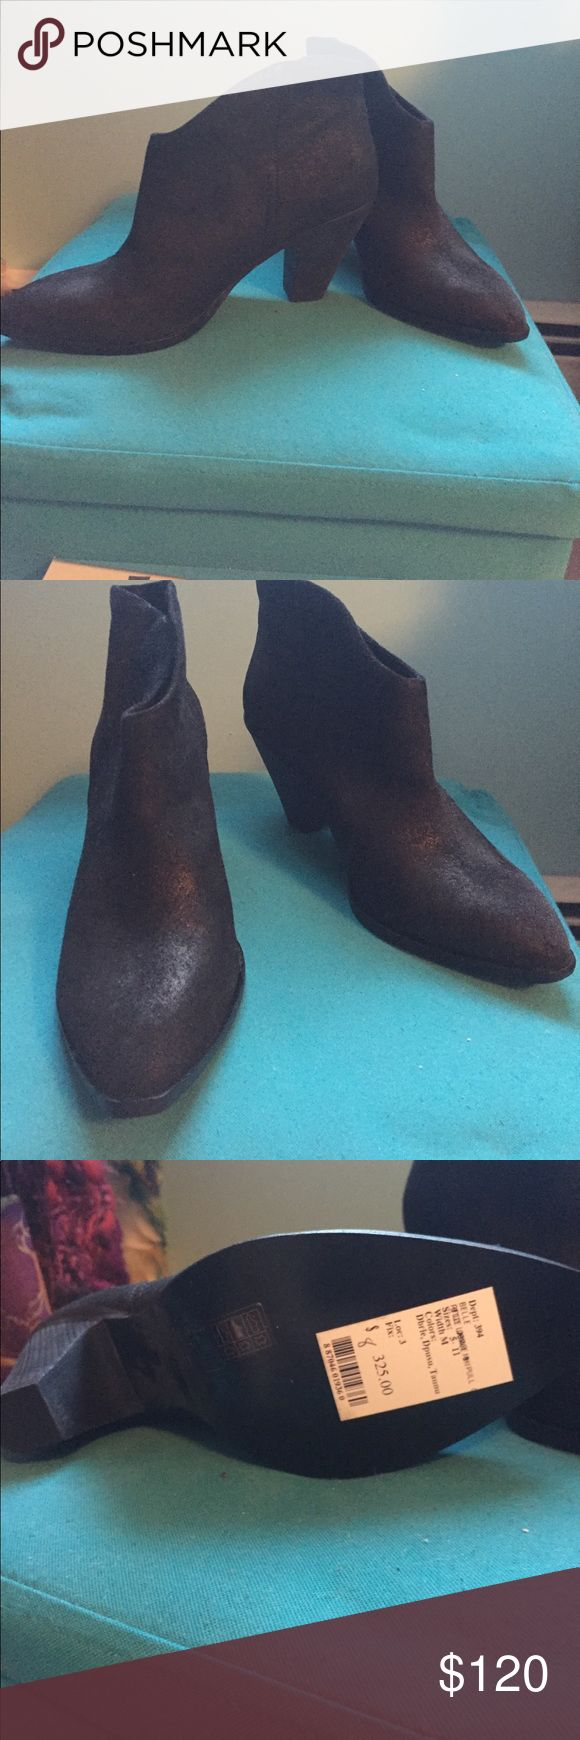 Belle black booties Black Belle suede booties. Size 8. Never worn. Belle by Sigerson Morrison Shoes Ankle Boots & Booties